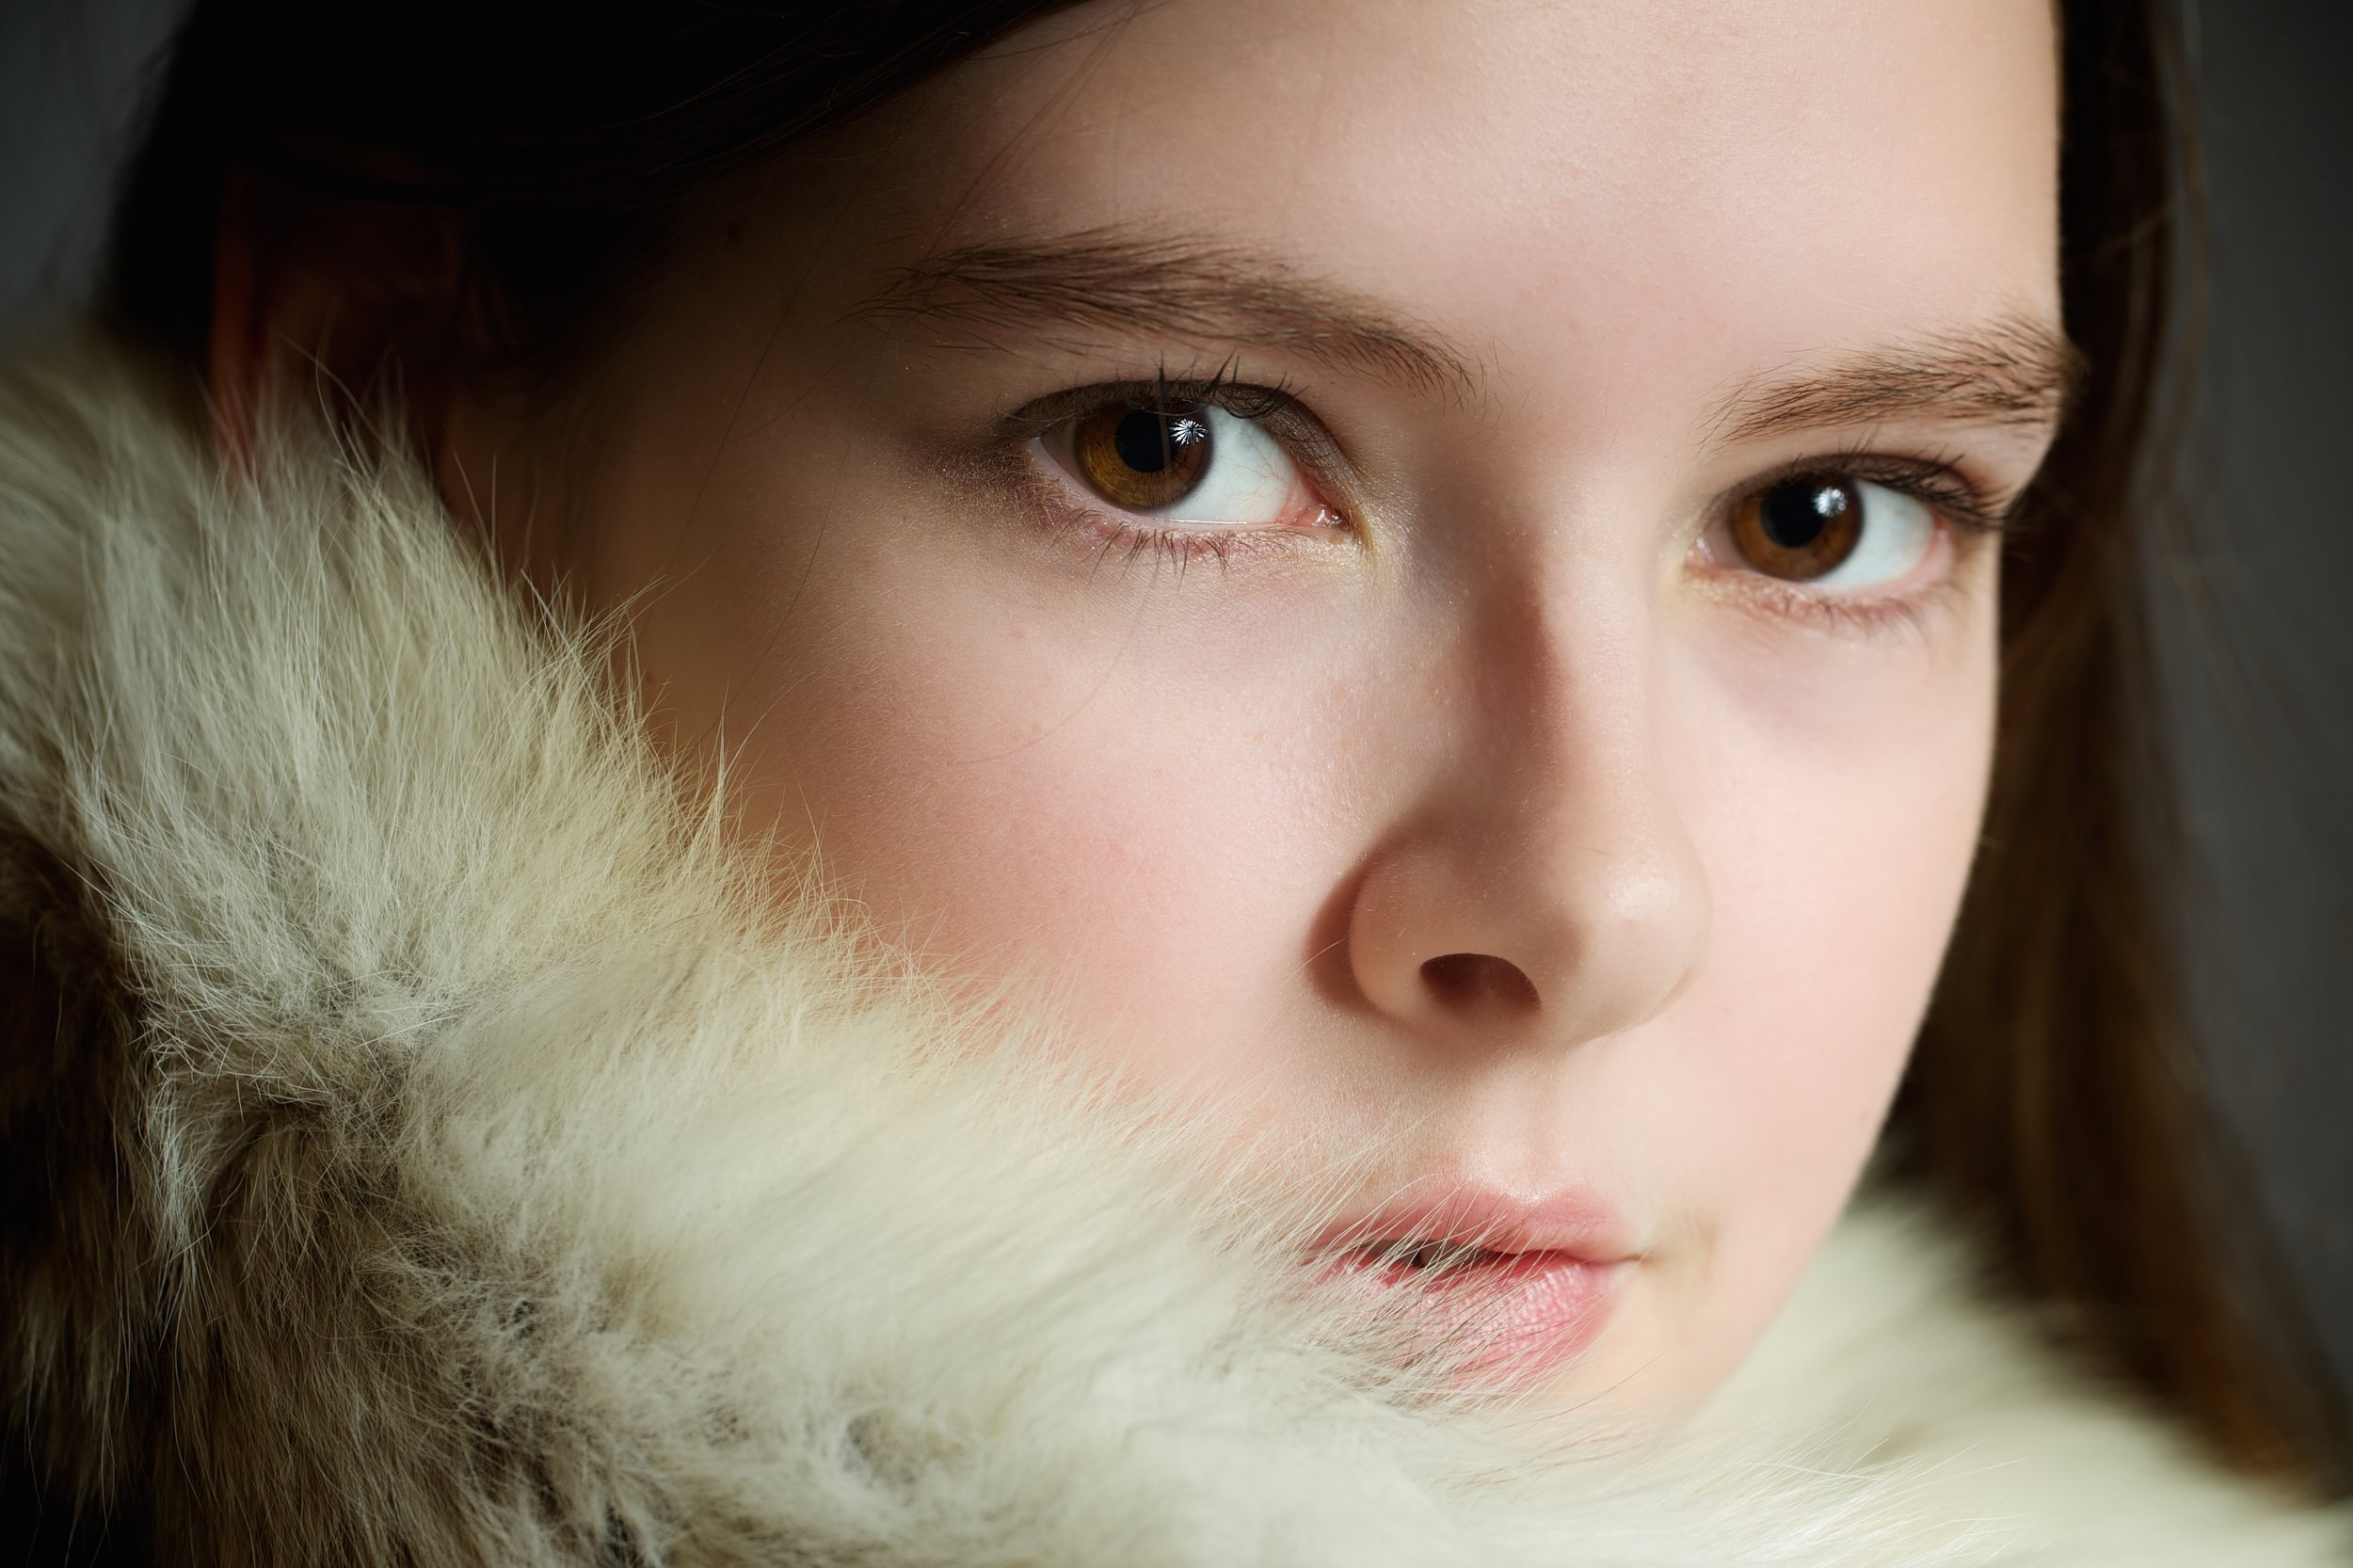 Katie in her days of innocence - 90mm f2 on Canon 5D MkIII